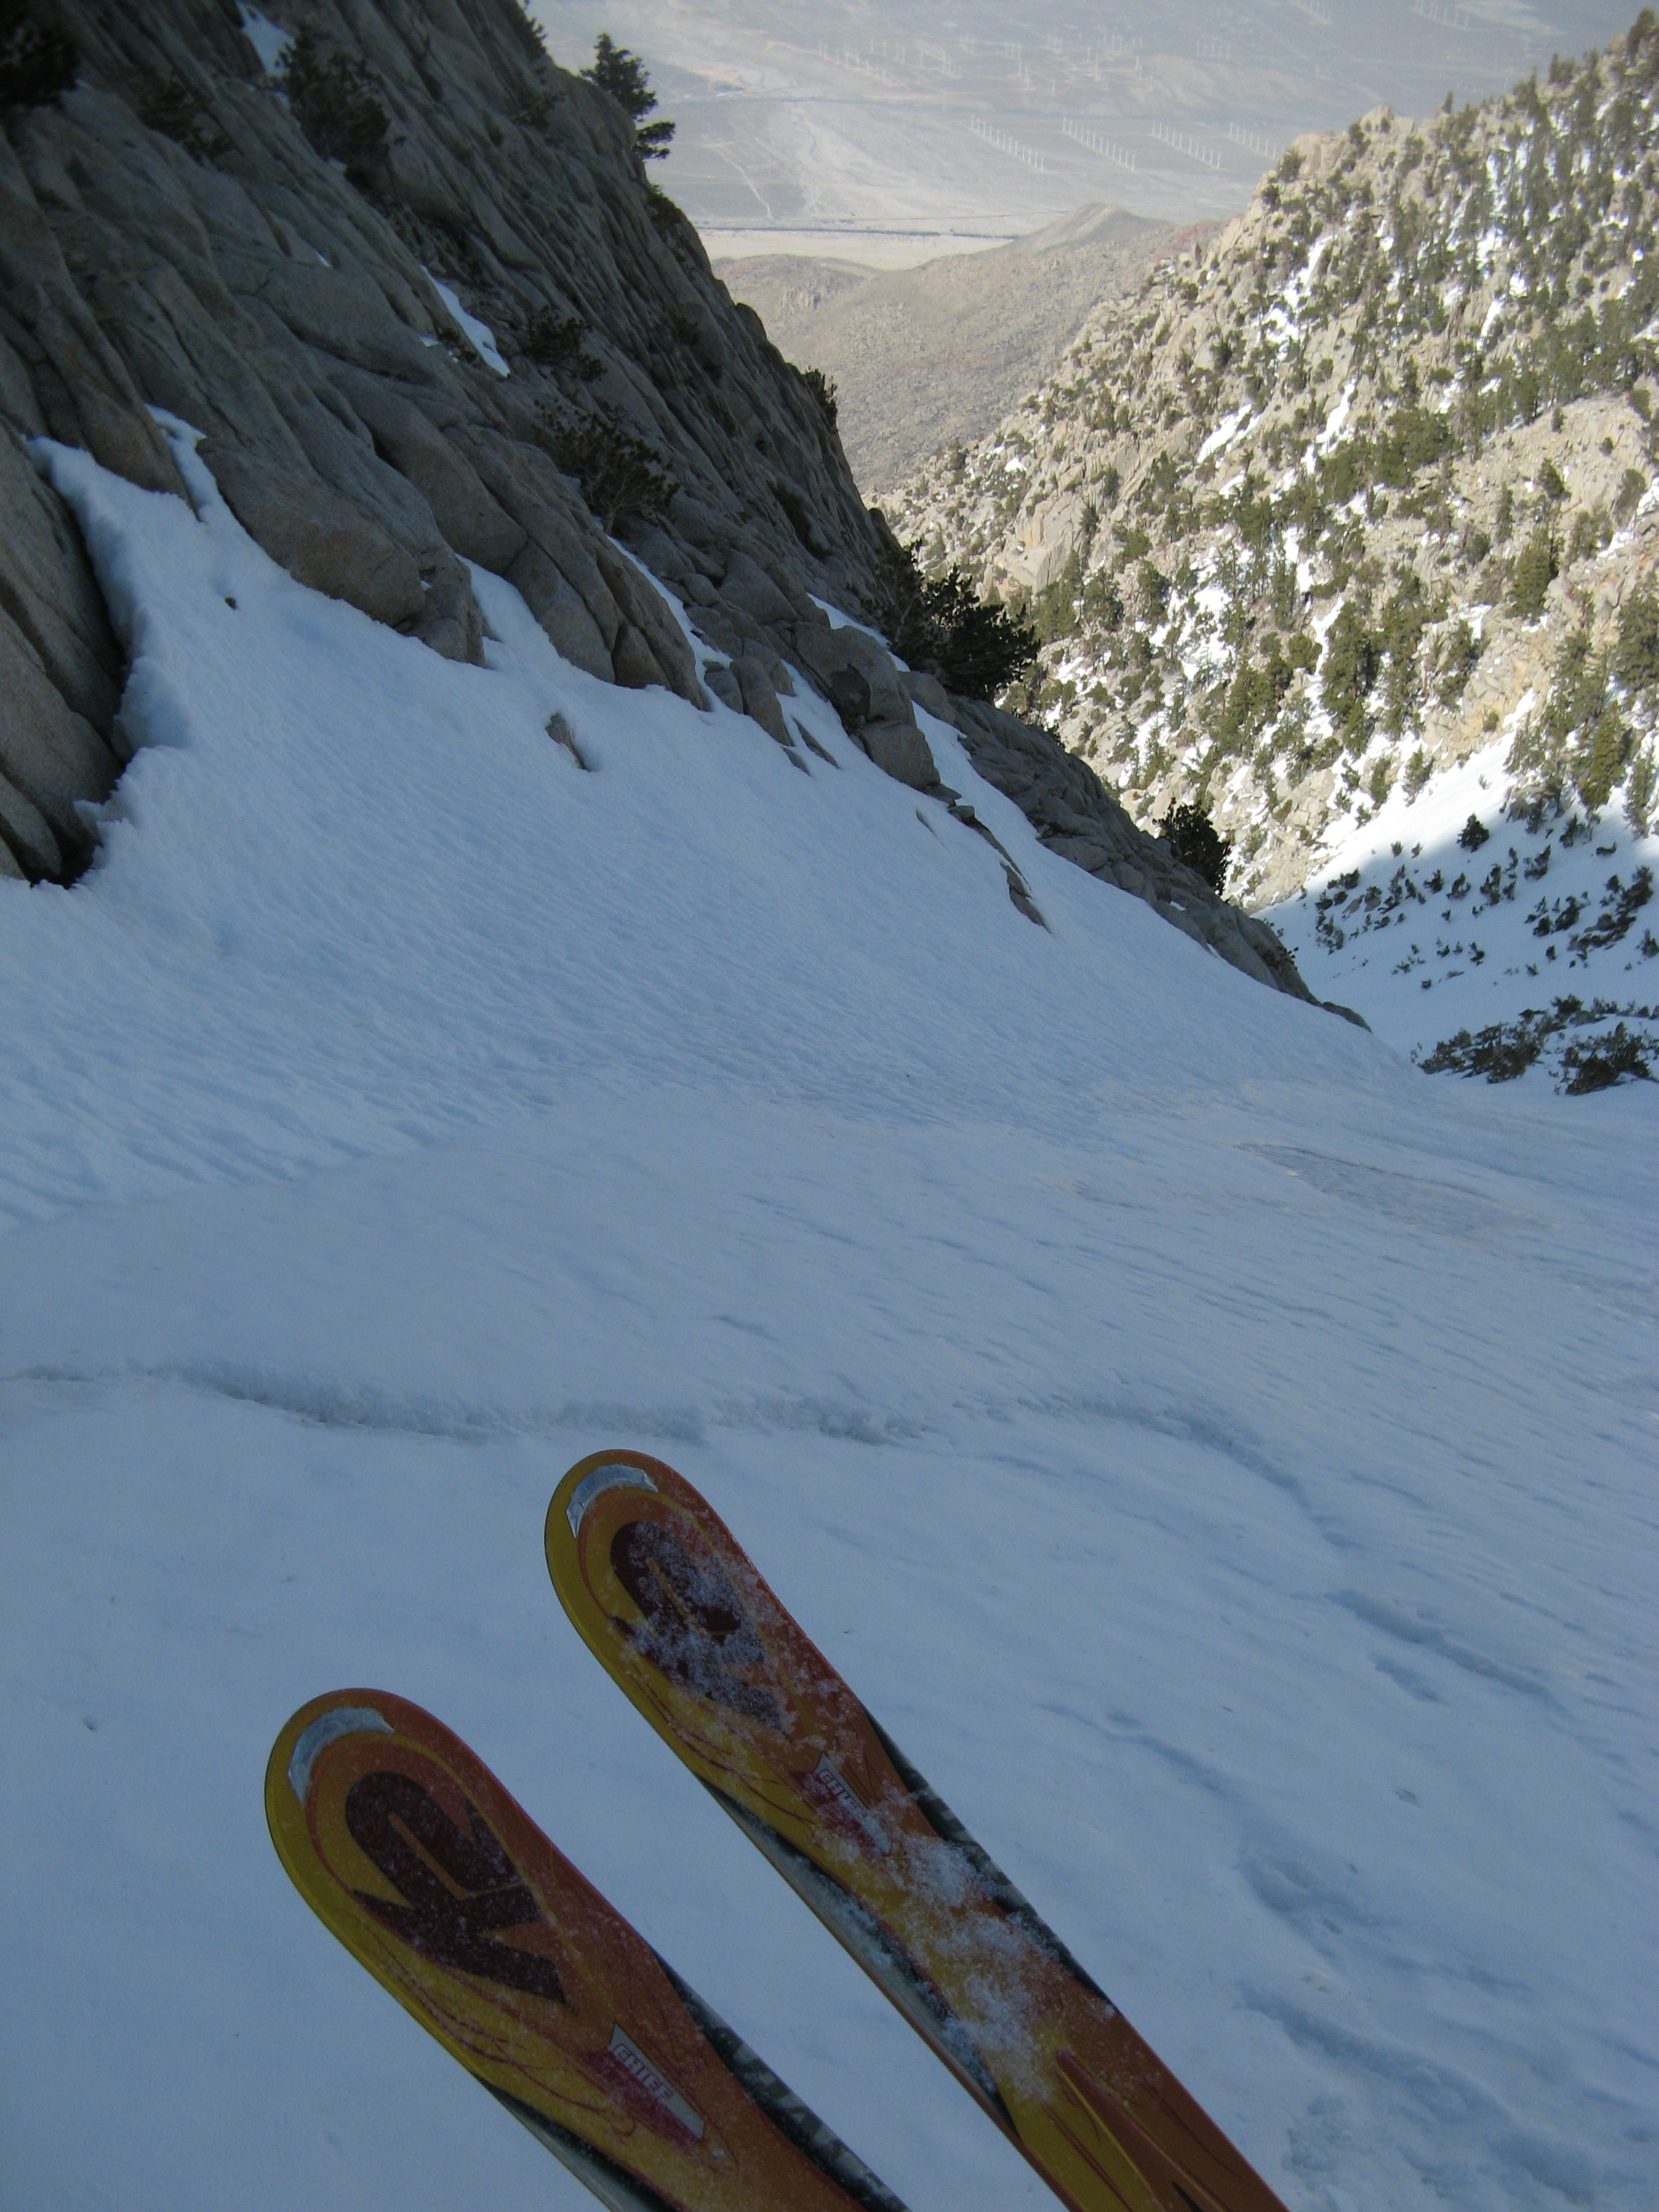 Looking down the couloir during a break.